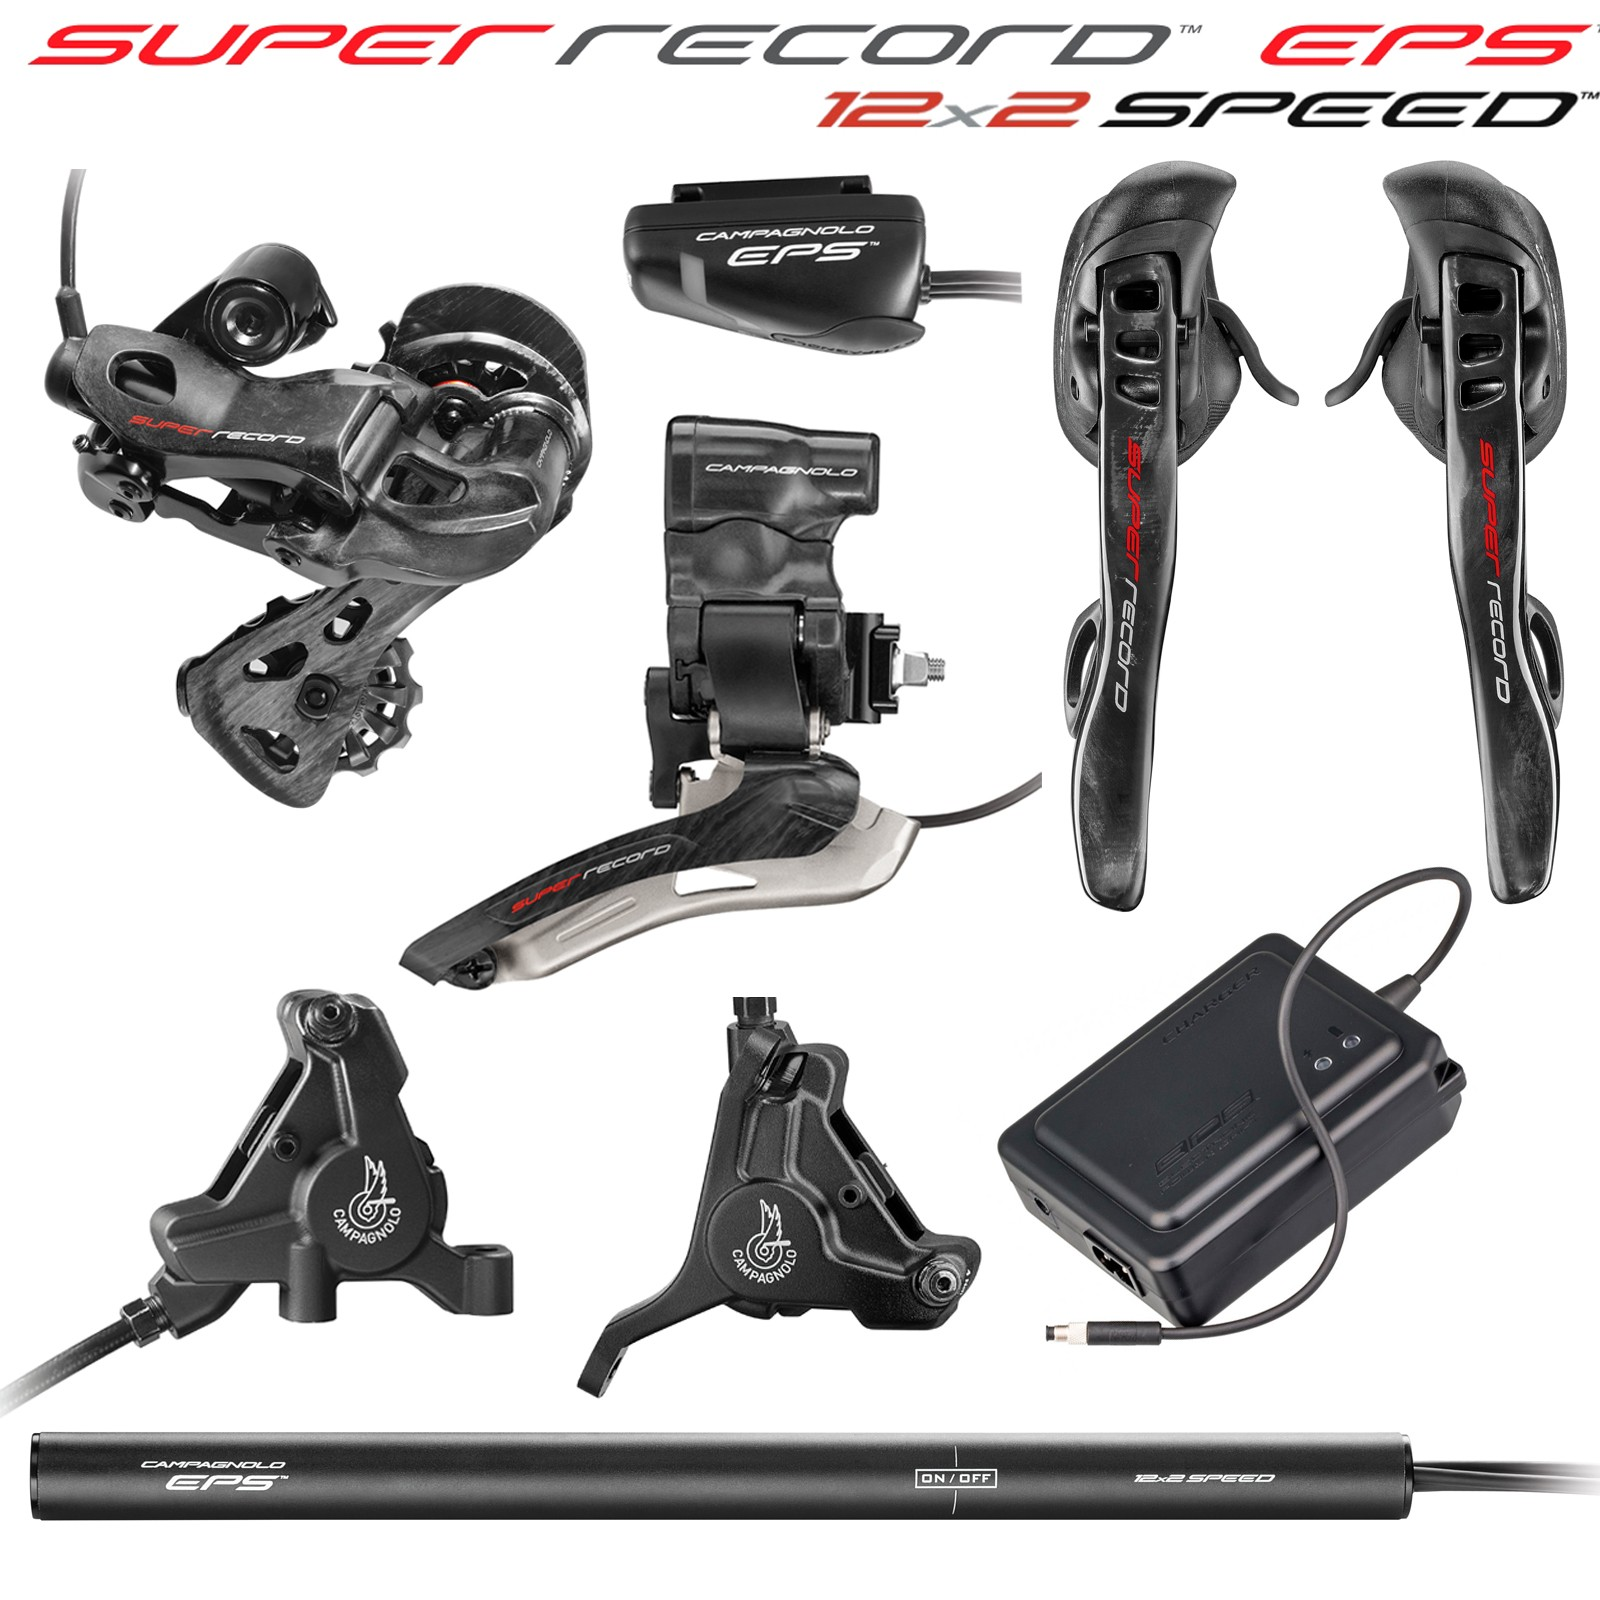 EPS KIT Super Record V4 DB 12s